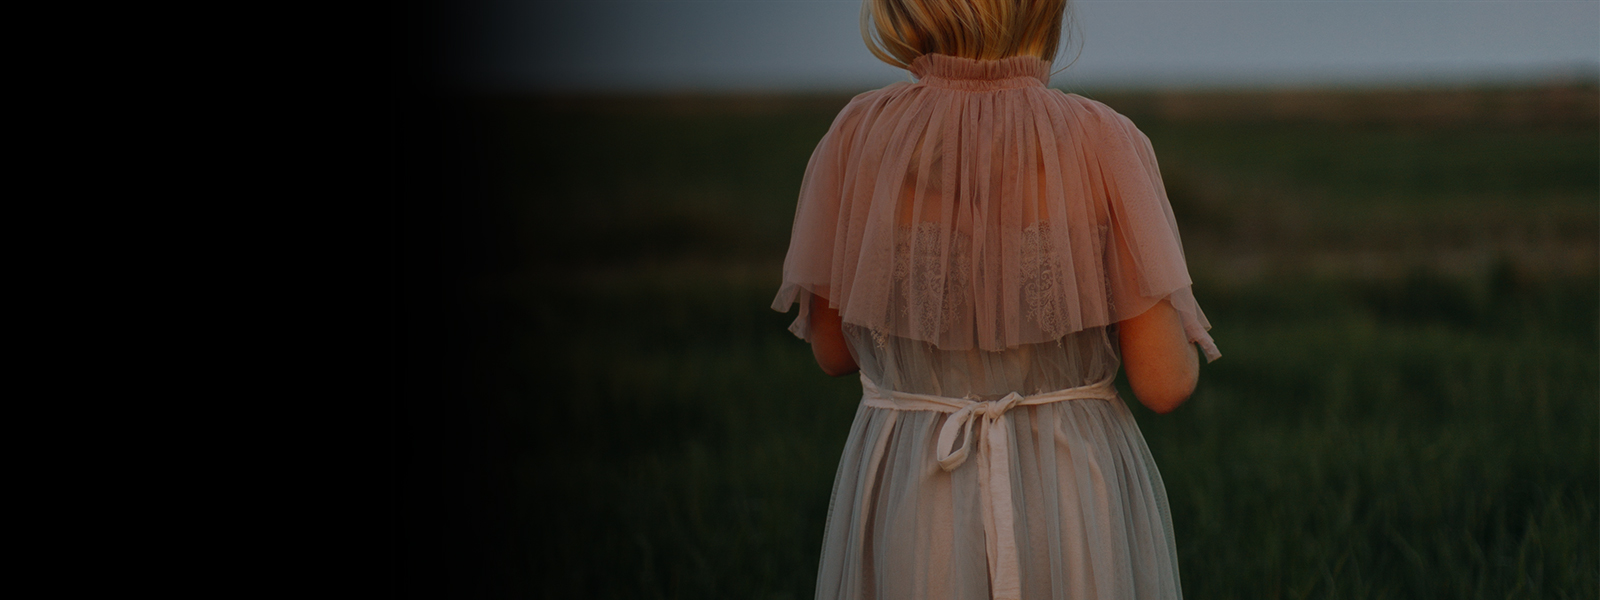 Fighting child marriage in the US